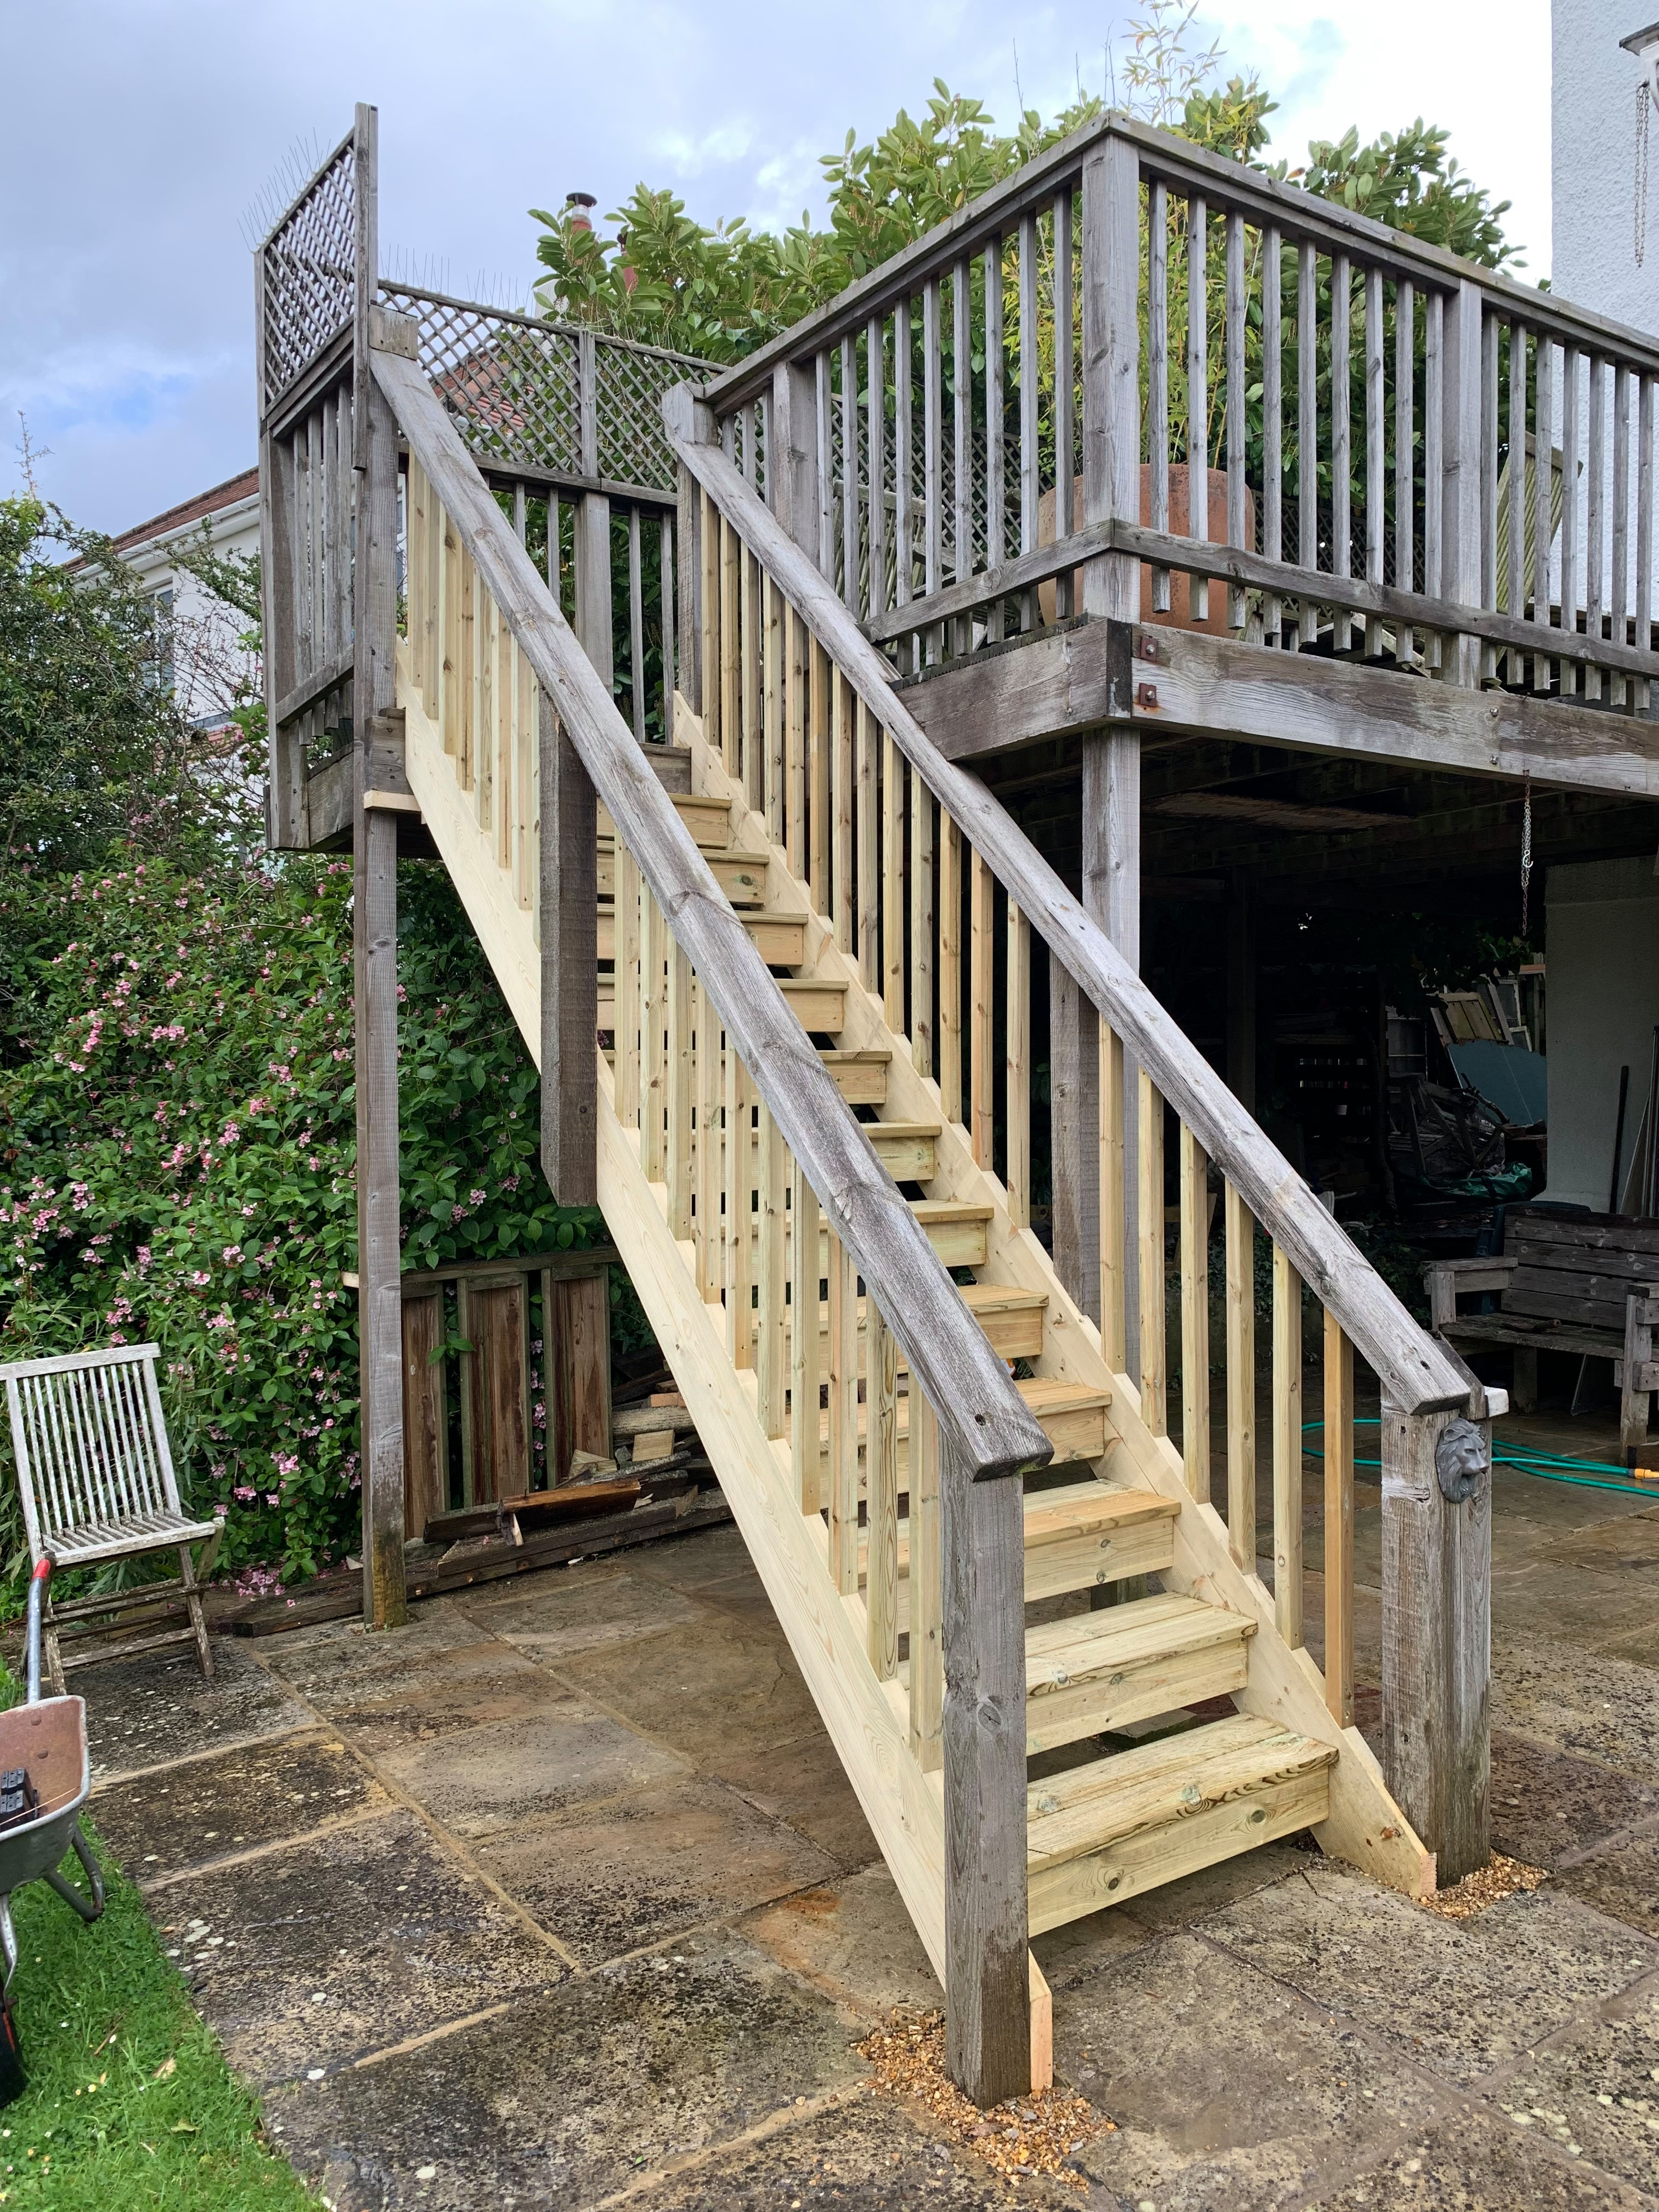 New decked staircase with existing handrails